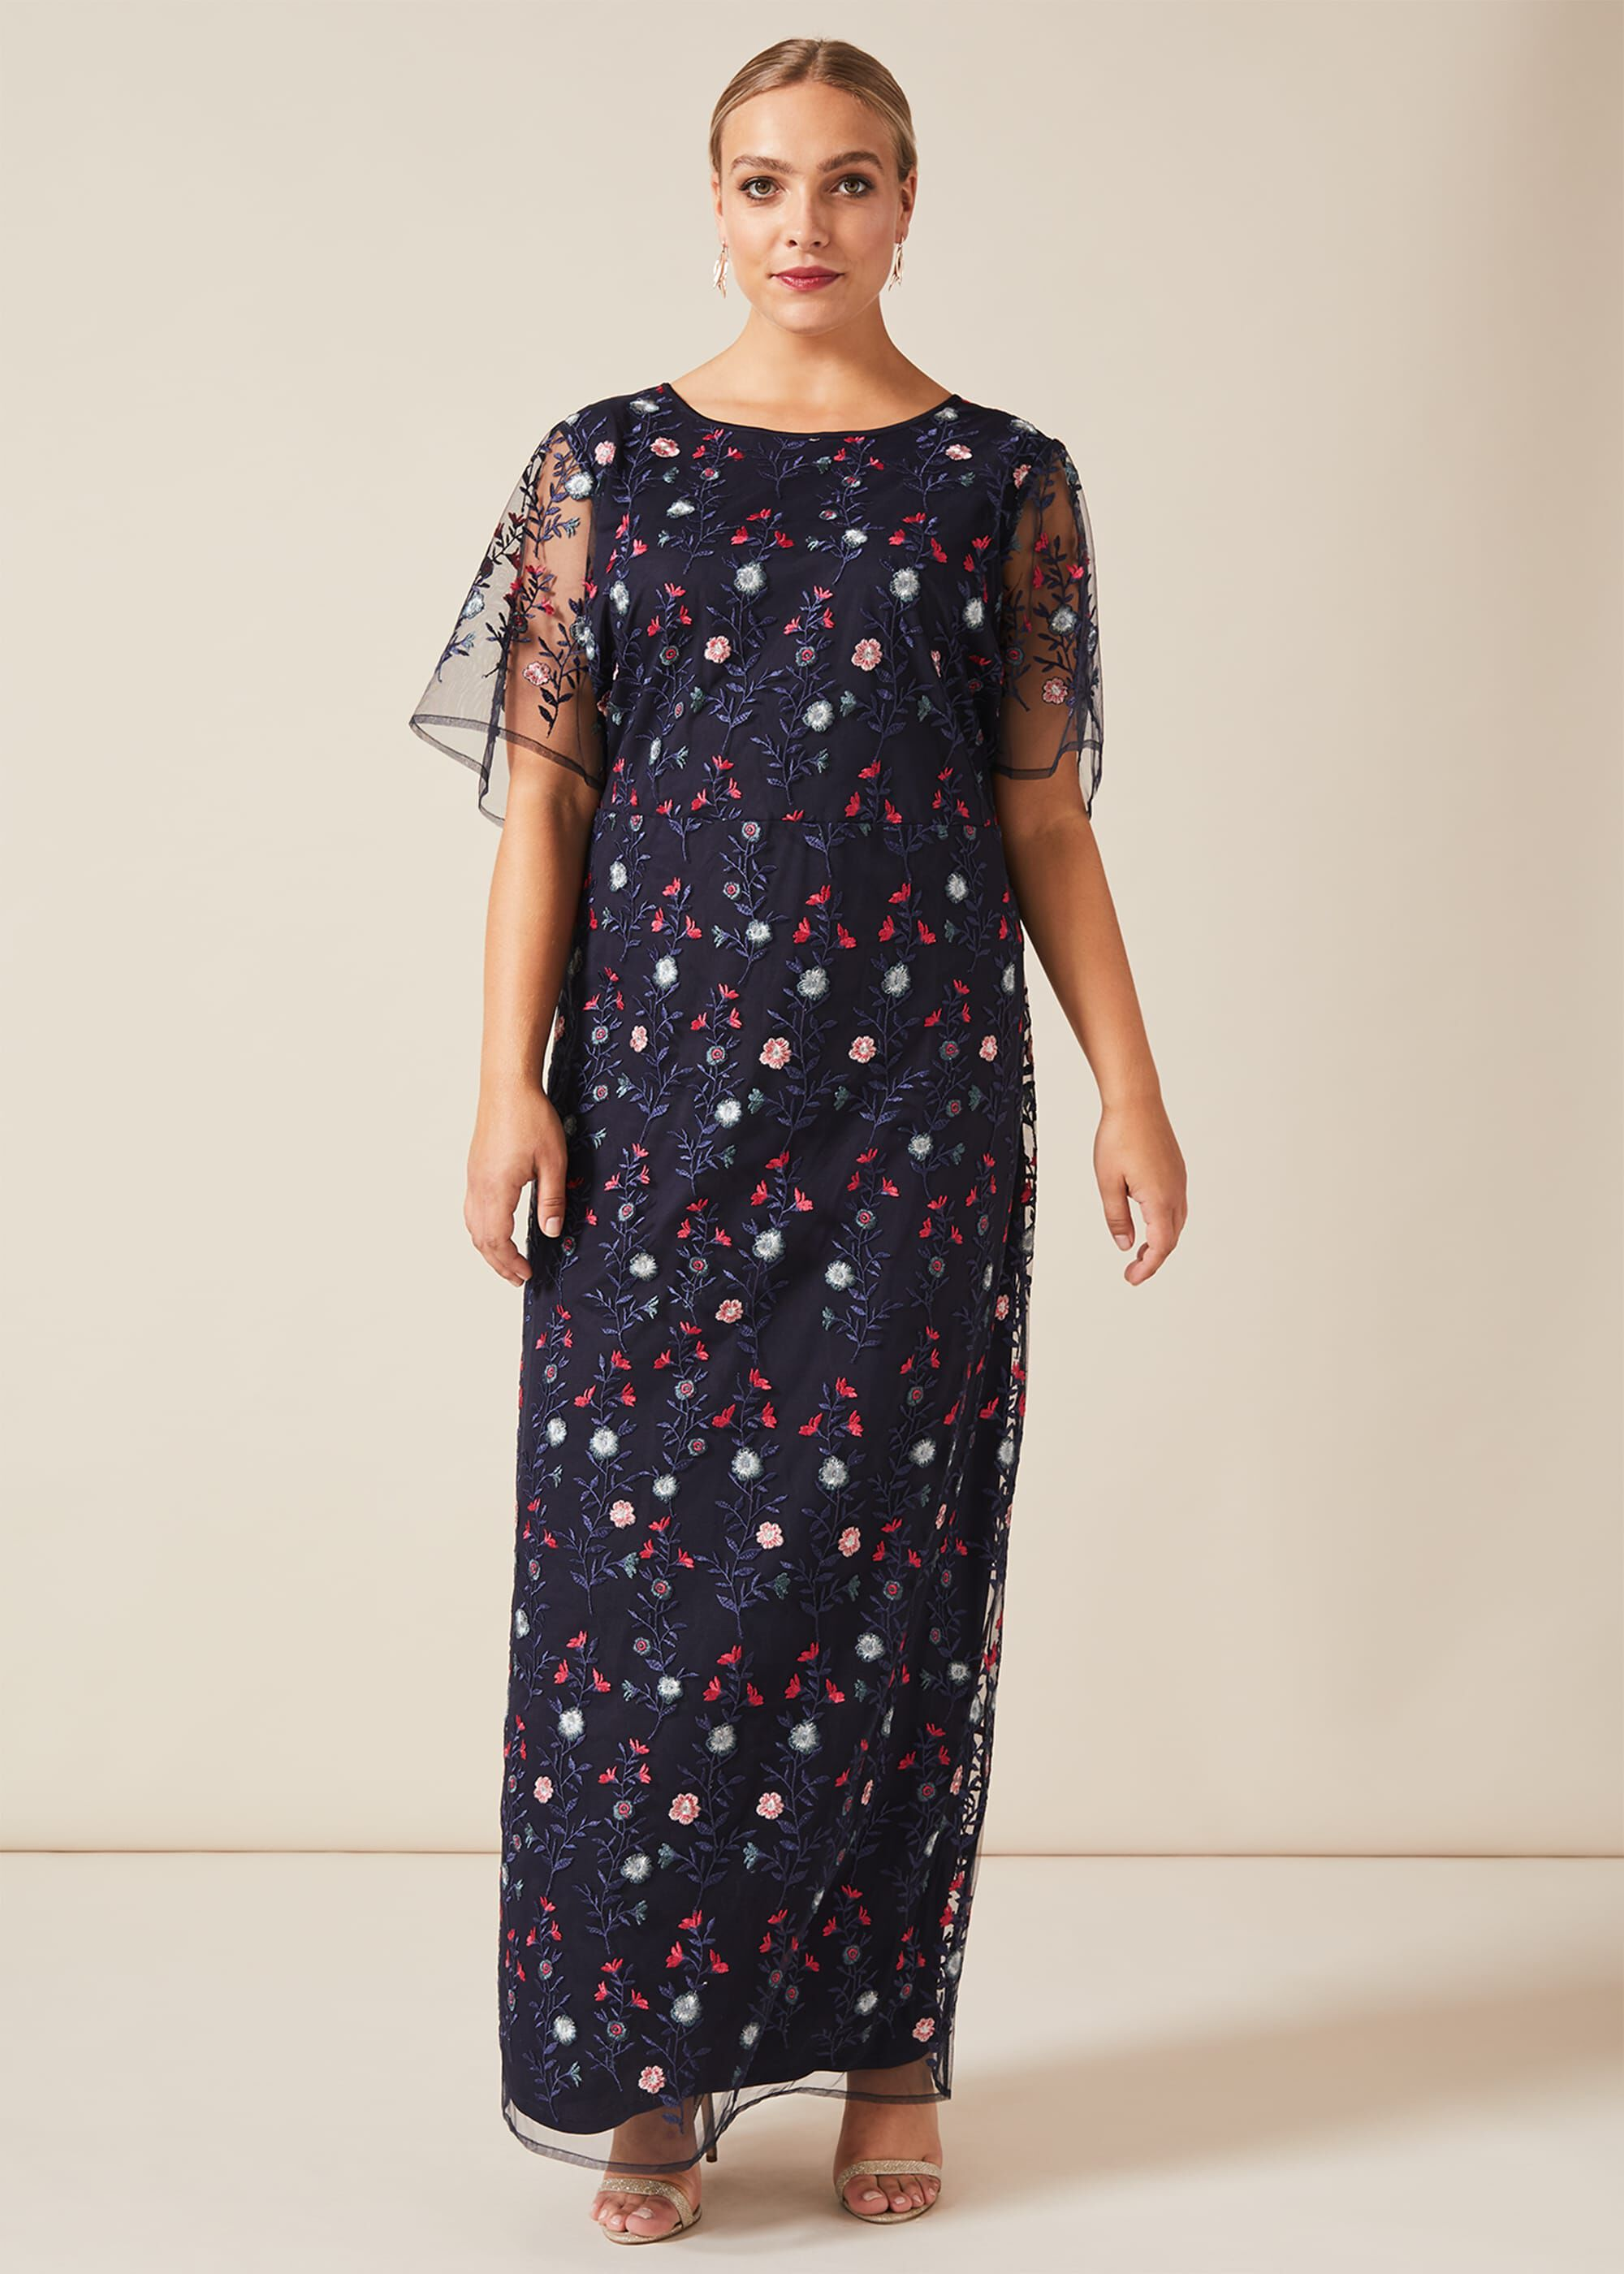 Studio 8 Emily Embroidered Maxi Dress, Blue, Maxi, Occasion Dress